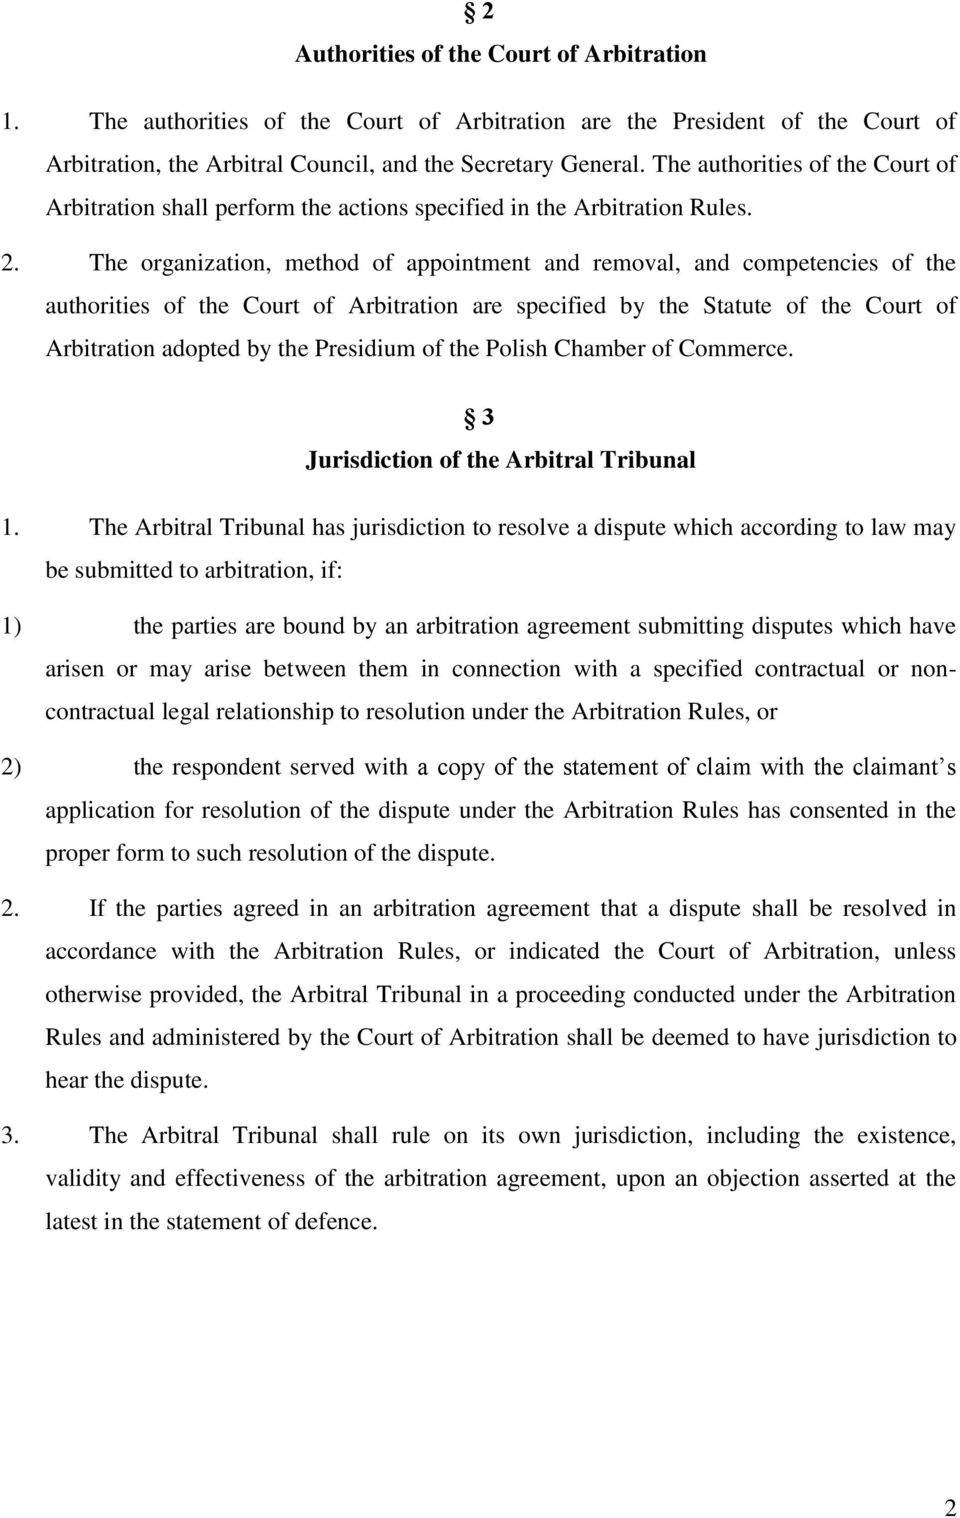 The organization, method of appointment and removal, and competencies of the authorities of the Court of Arbitration are specified by the Statute of the Court of Arbitration adopted by the Presidium